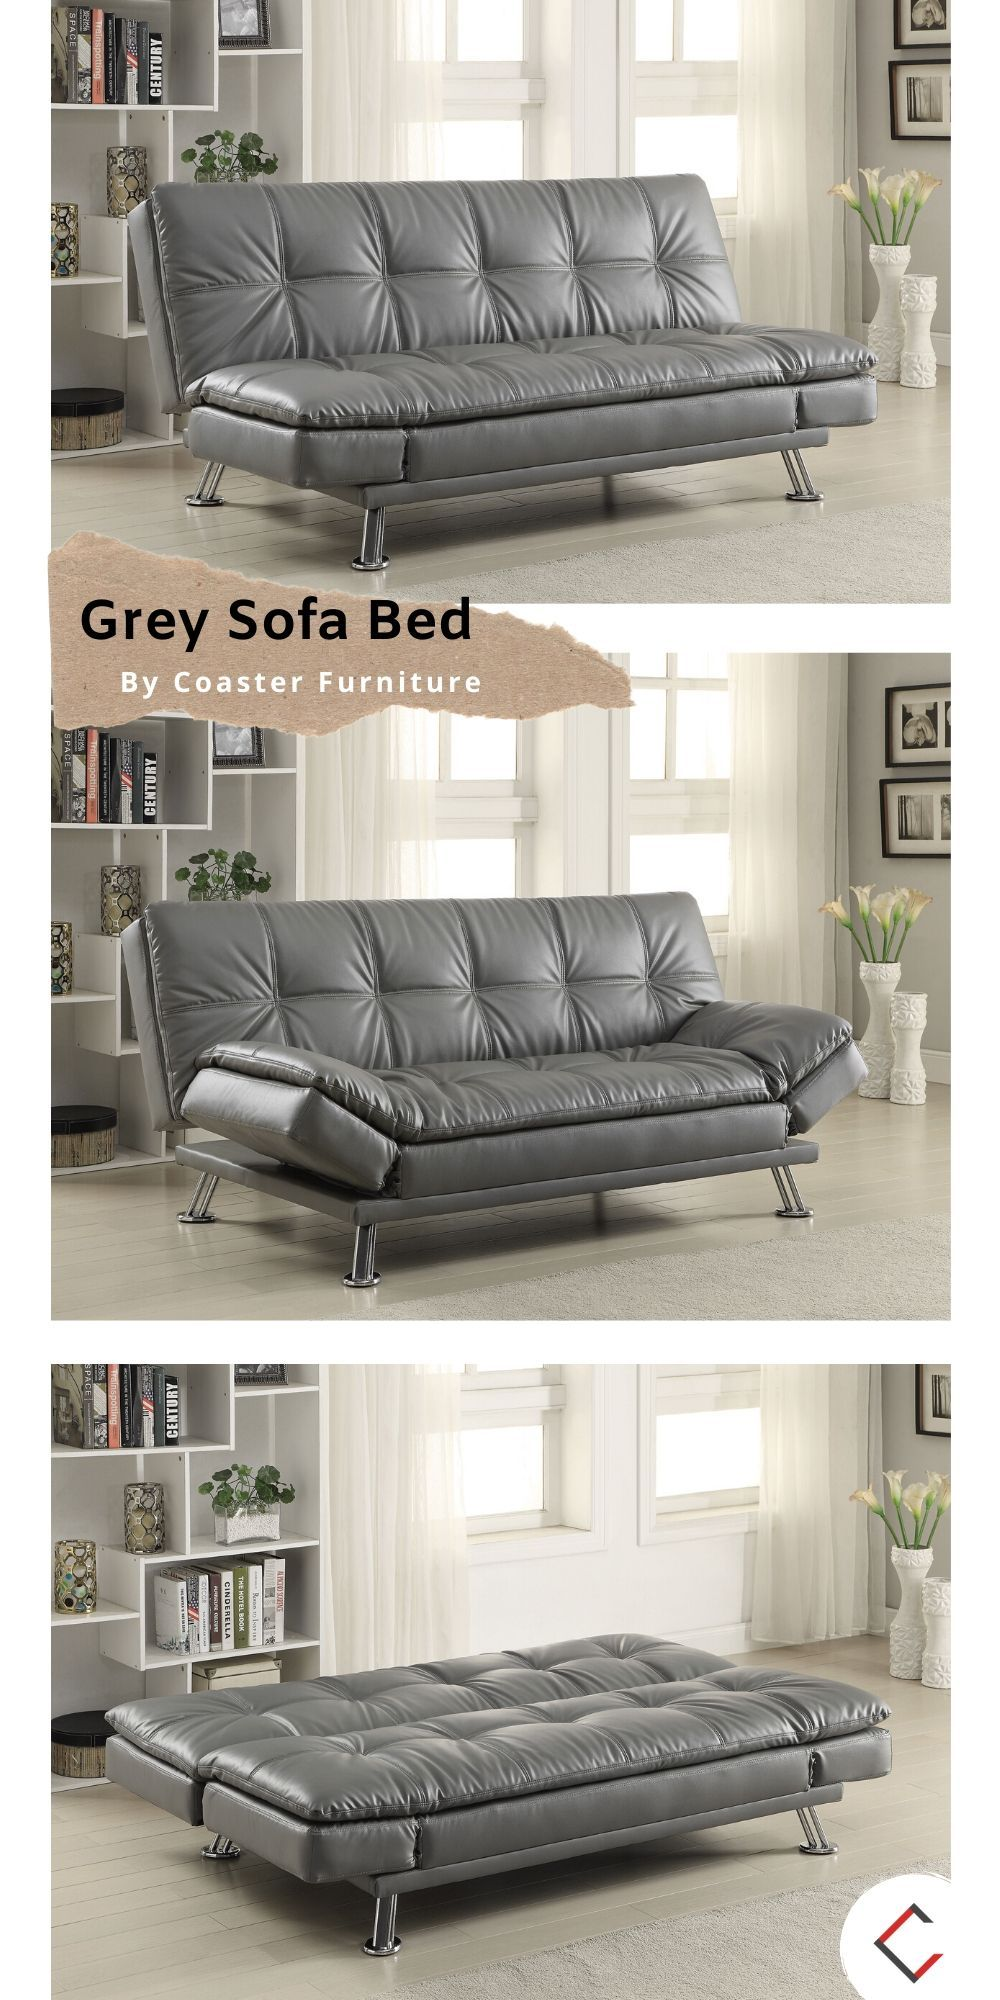 Coaster Furniture Dilleston Grey Sofa Bed In 2020 Furniture